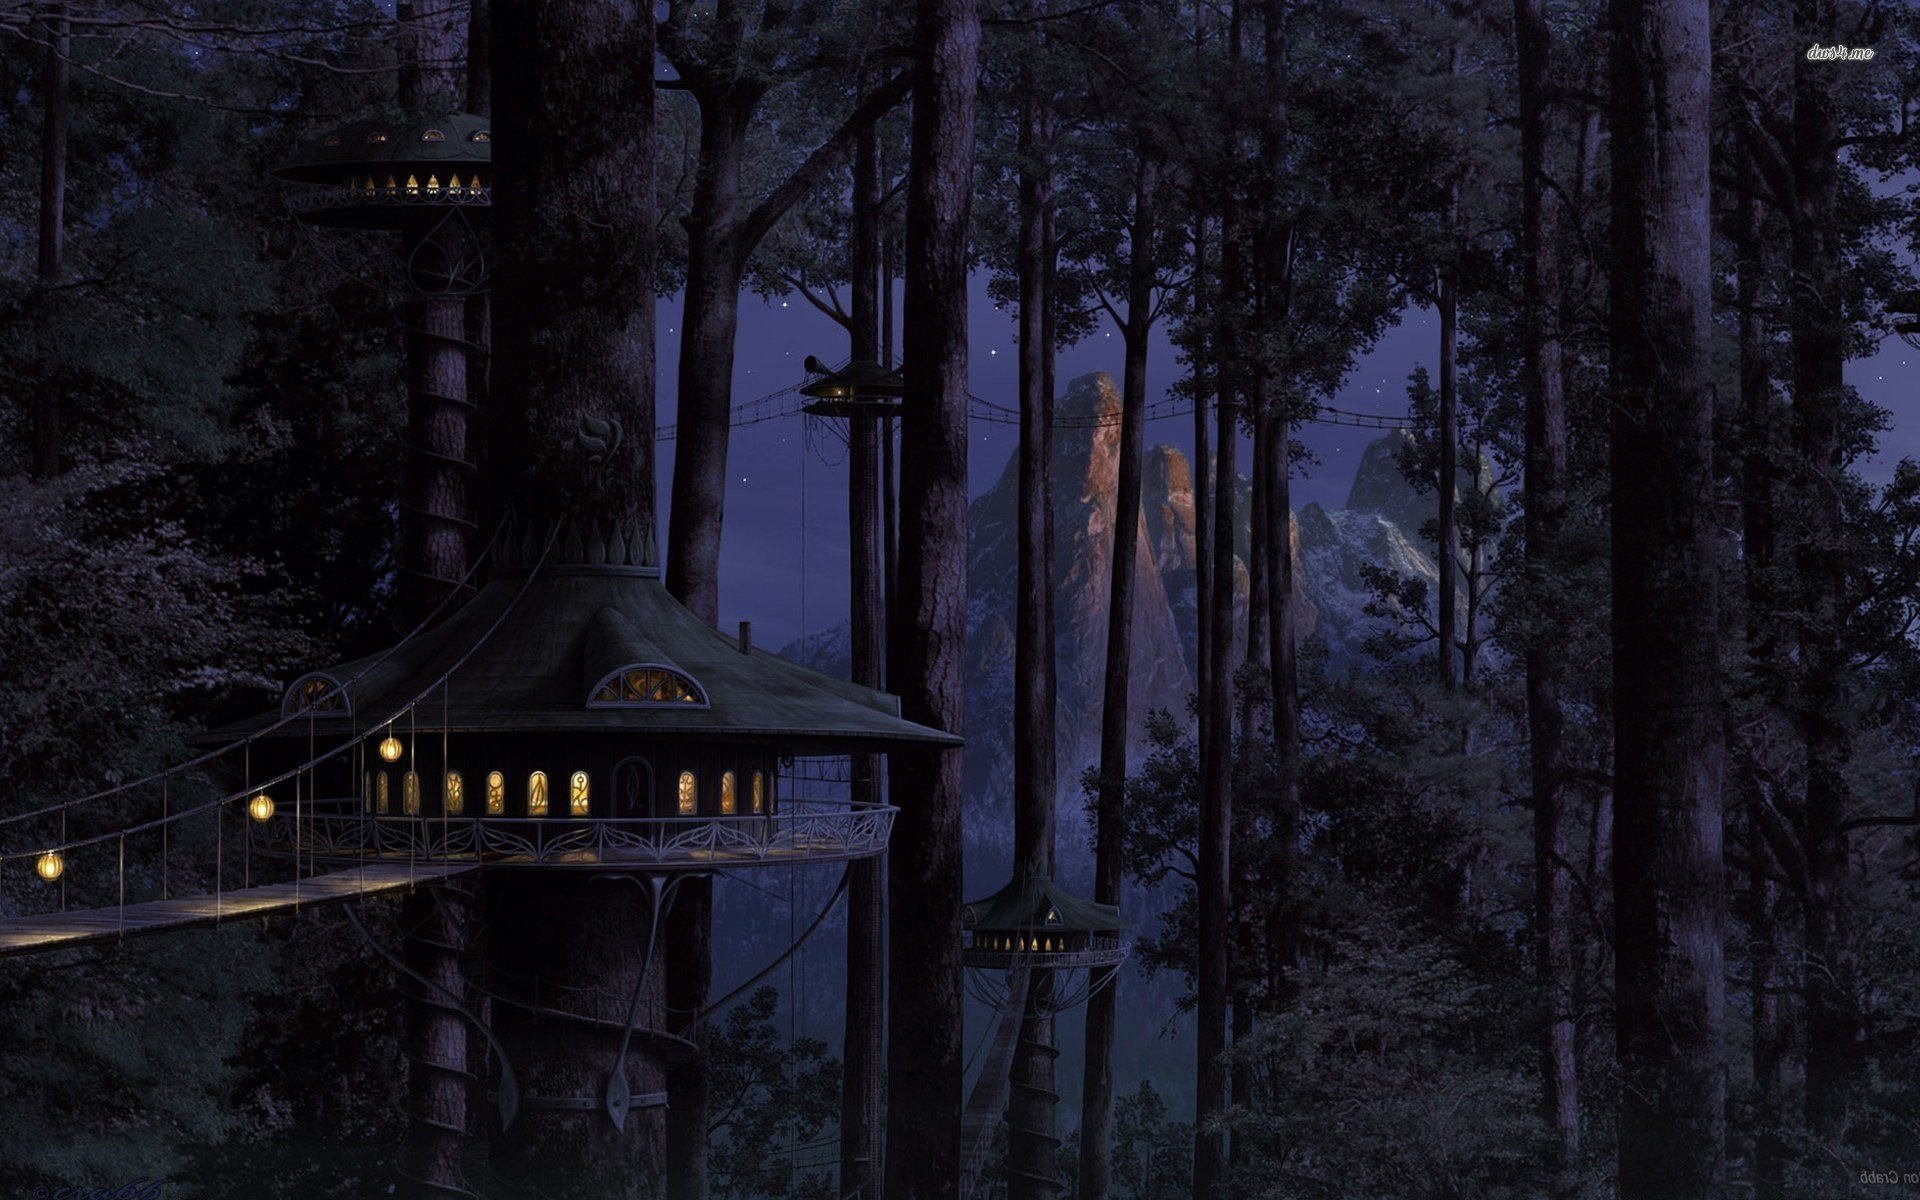 9747-tree-house-house-tree-light-night-bridge-forest.jpg